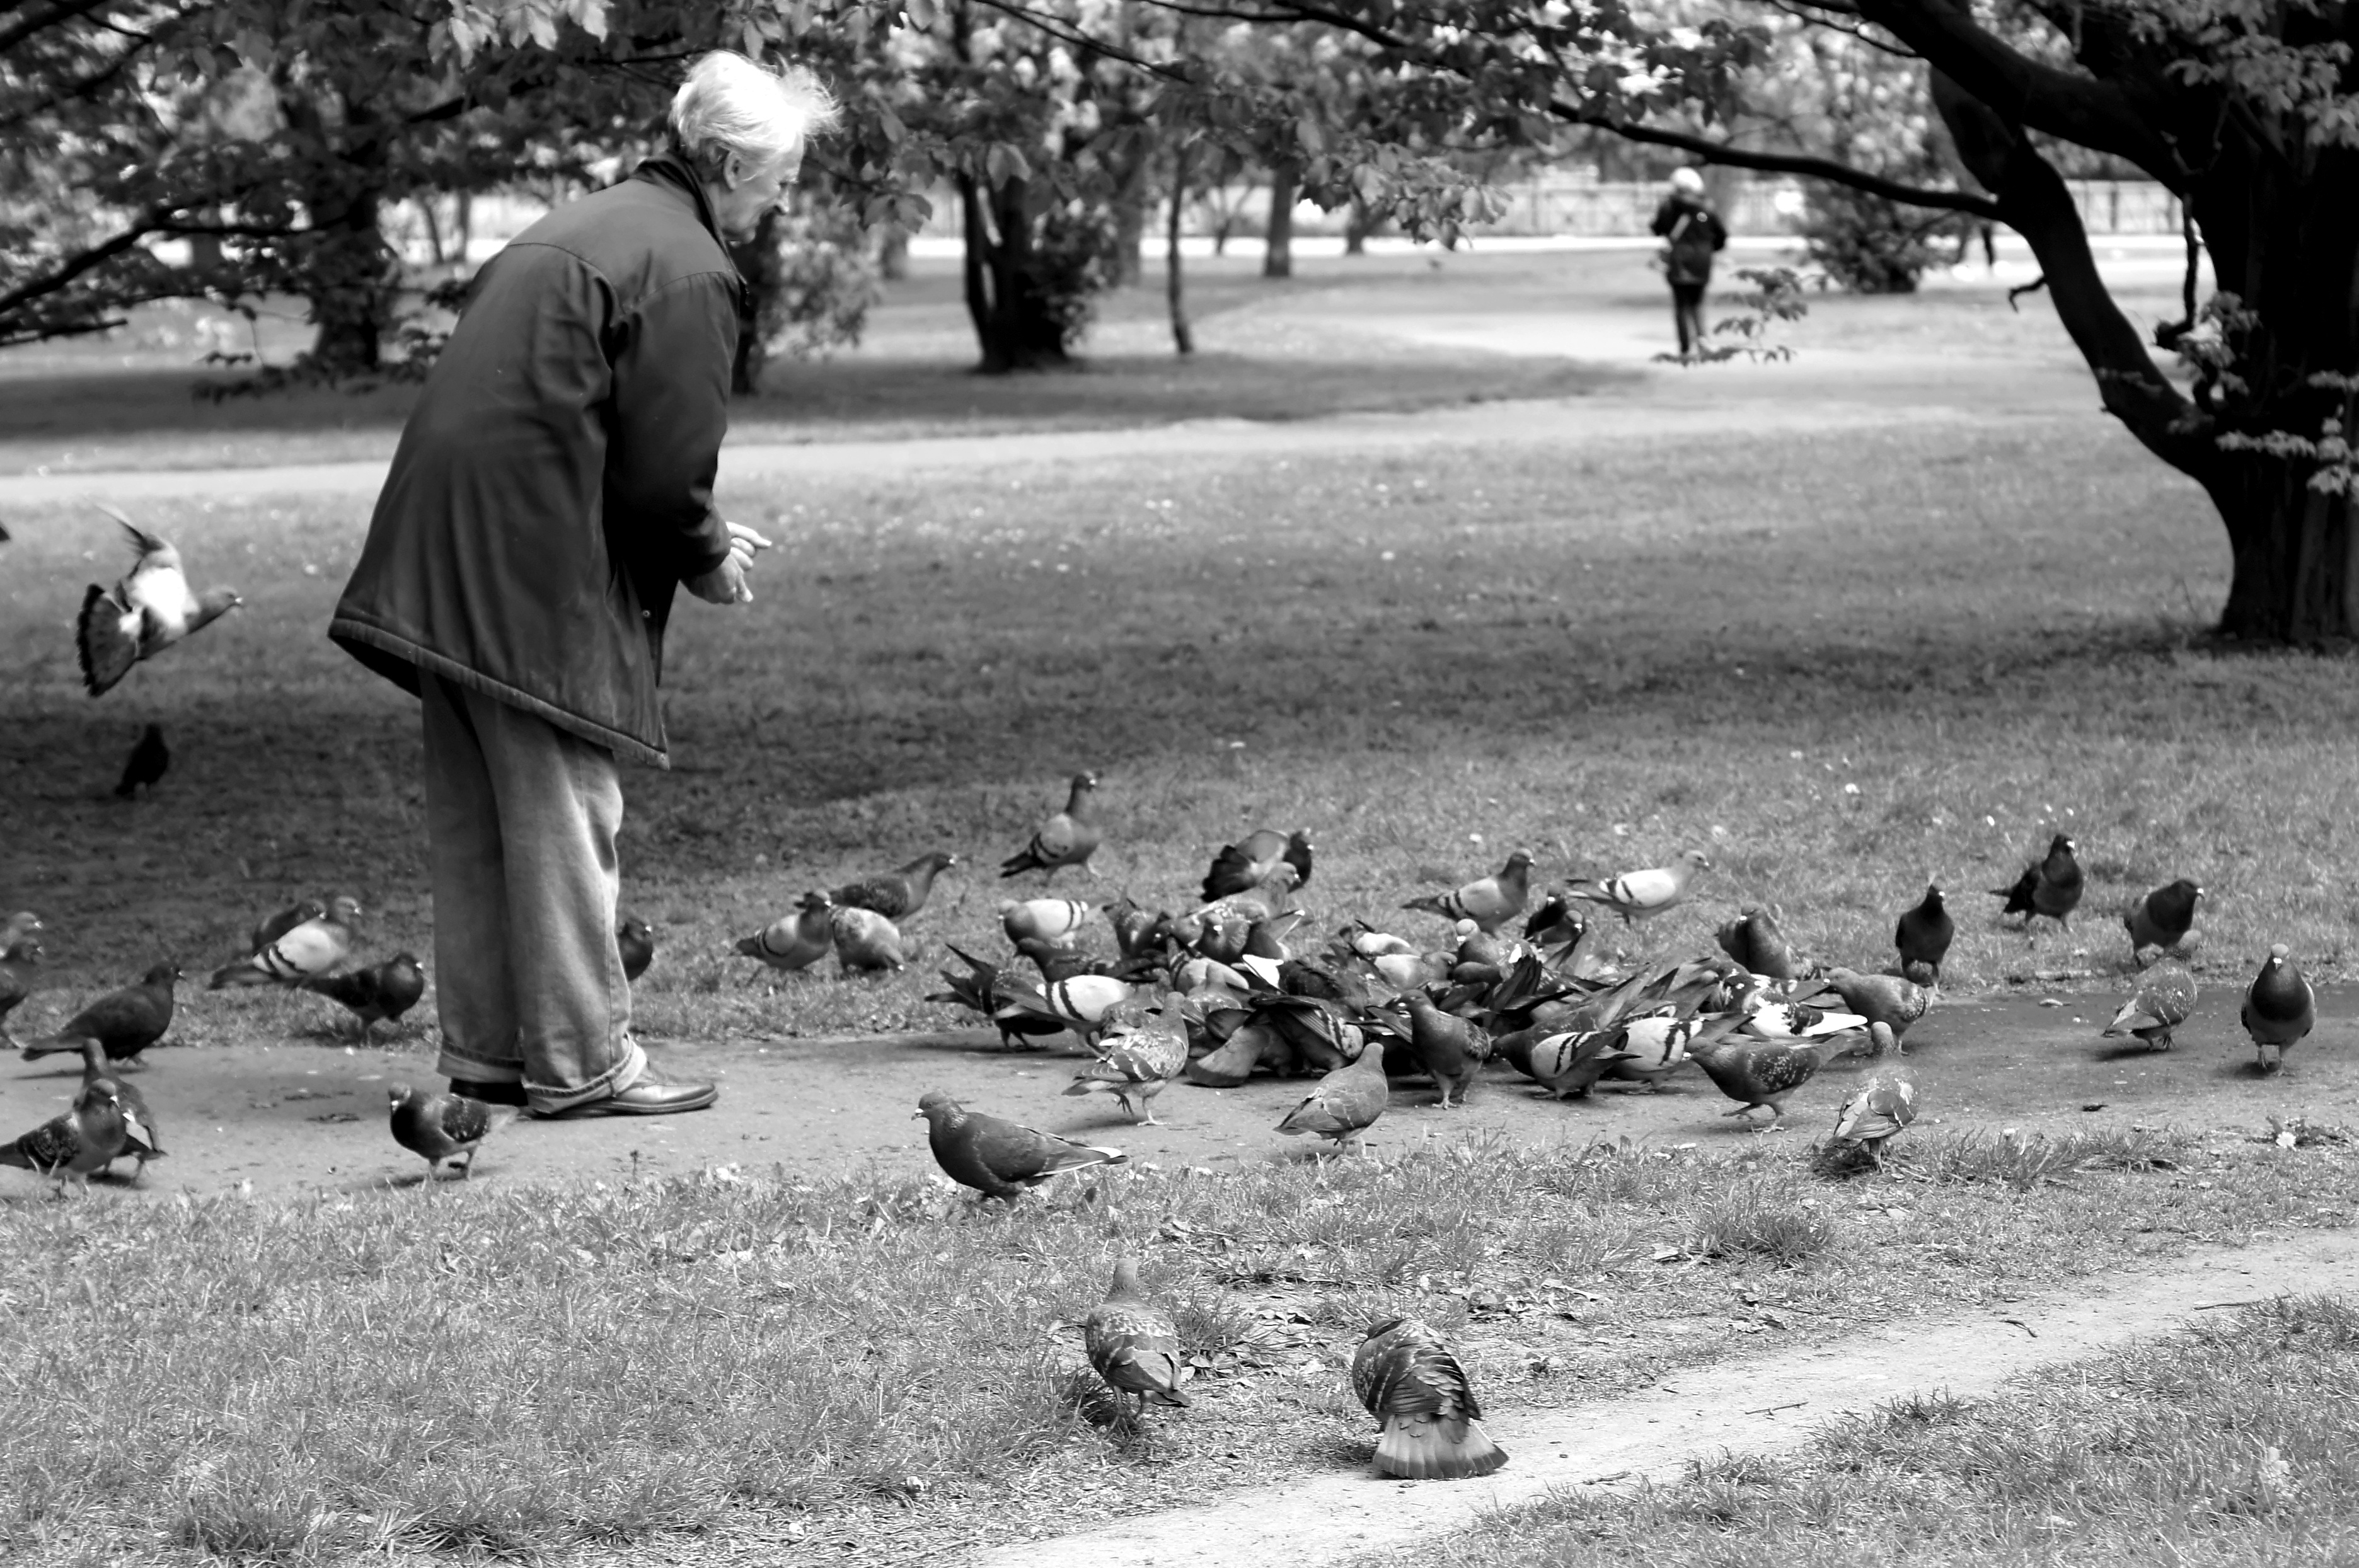 Old man feeding pigeons in the park - Our Great Photos